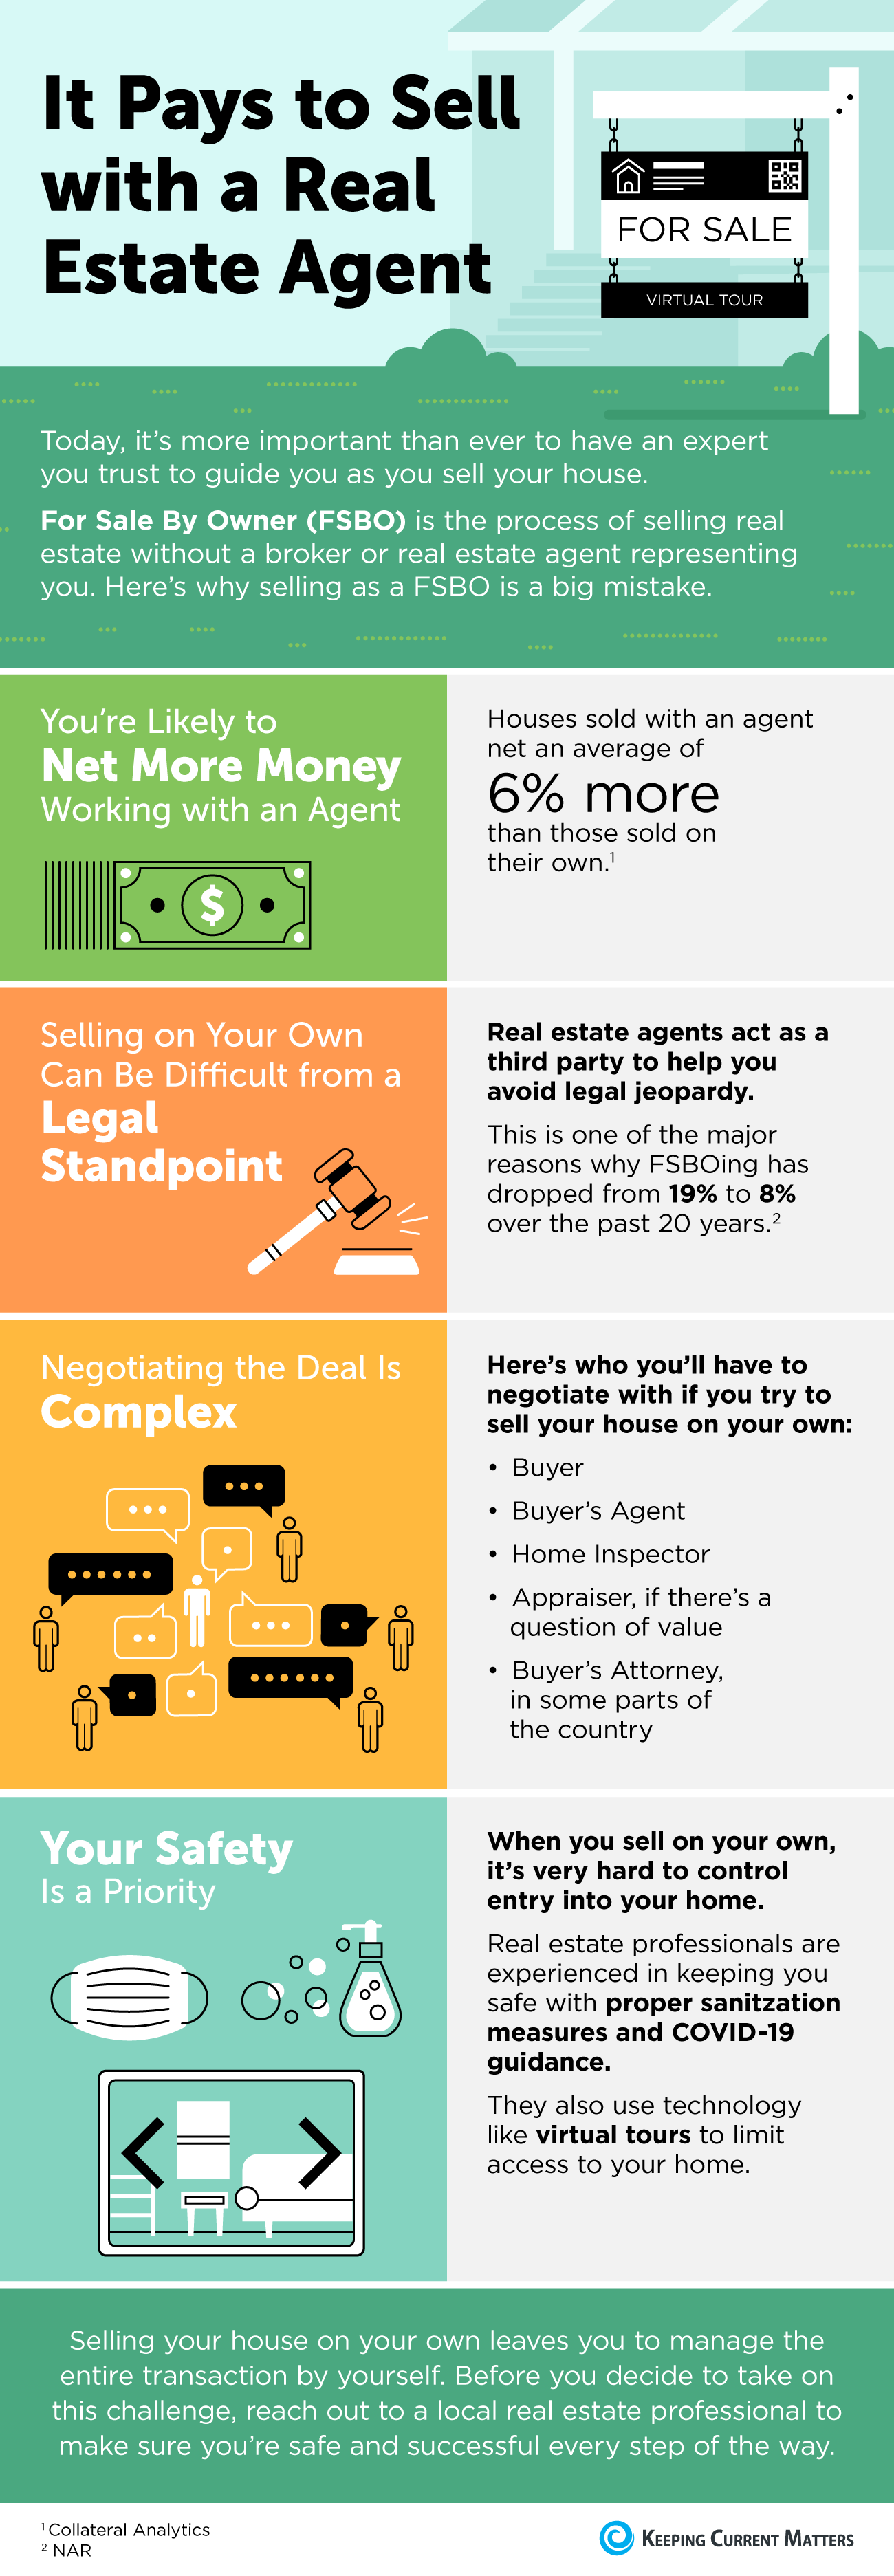 It Pays to Sell with a Real Estate Agent [INFOGRAPHIC] | Keeping Current Matters